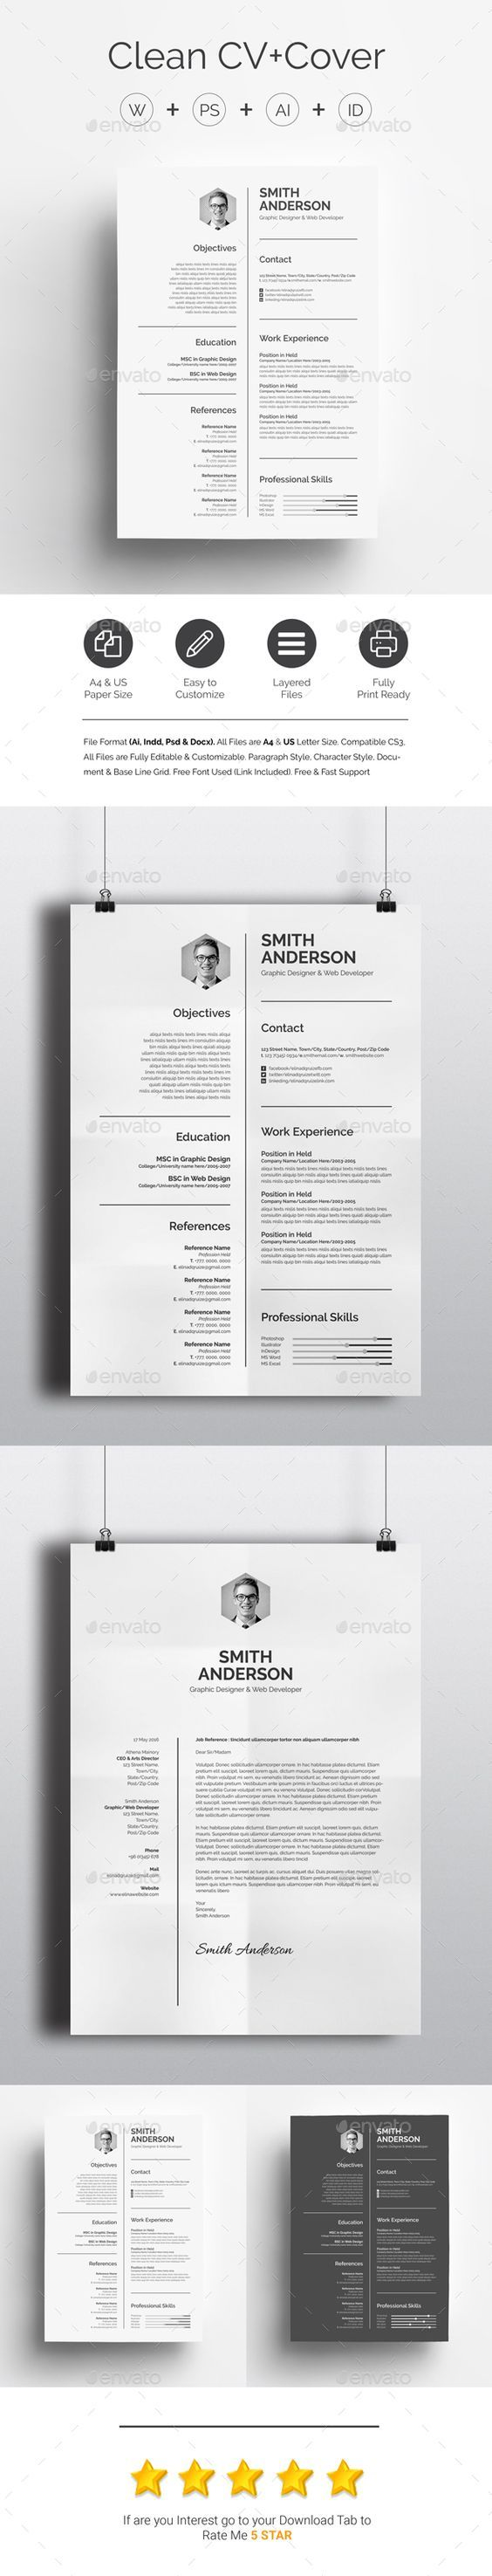 Best 25+ Modern Resume Ideas On Pinterest | Creative Cv Template, Cv  Template And Creative Cv